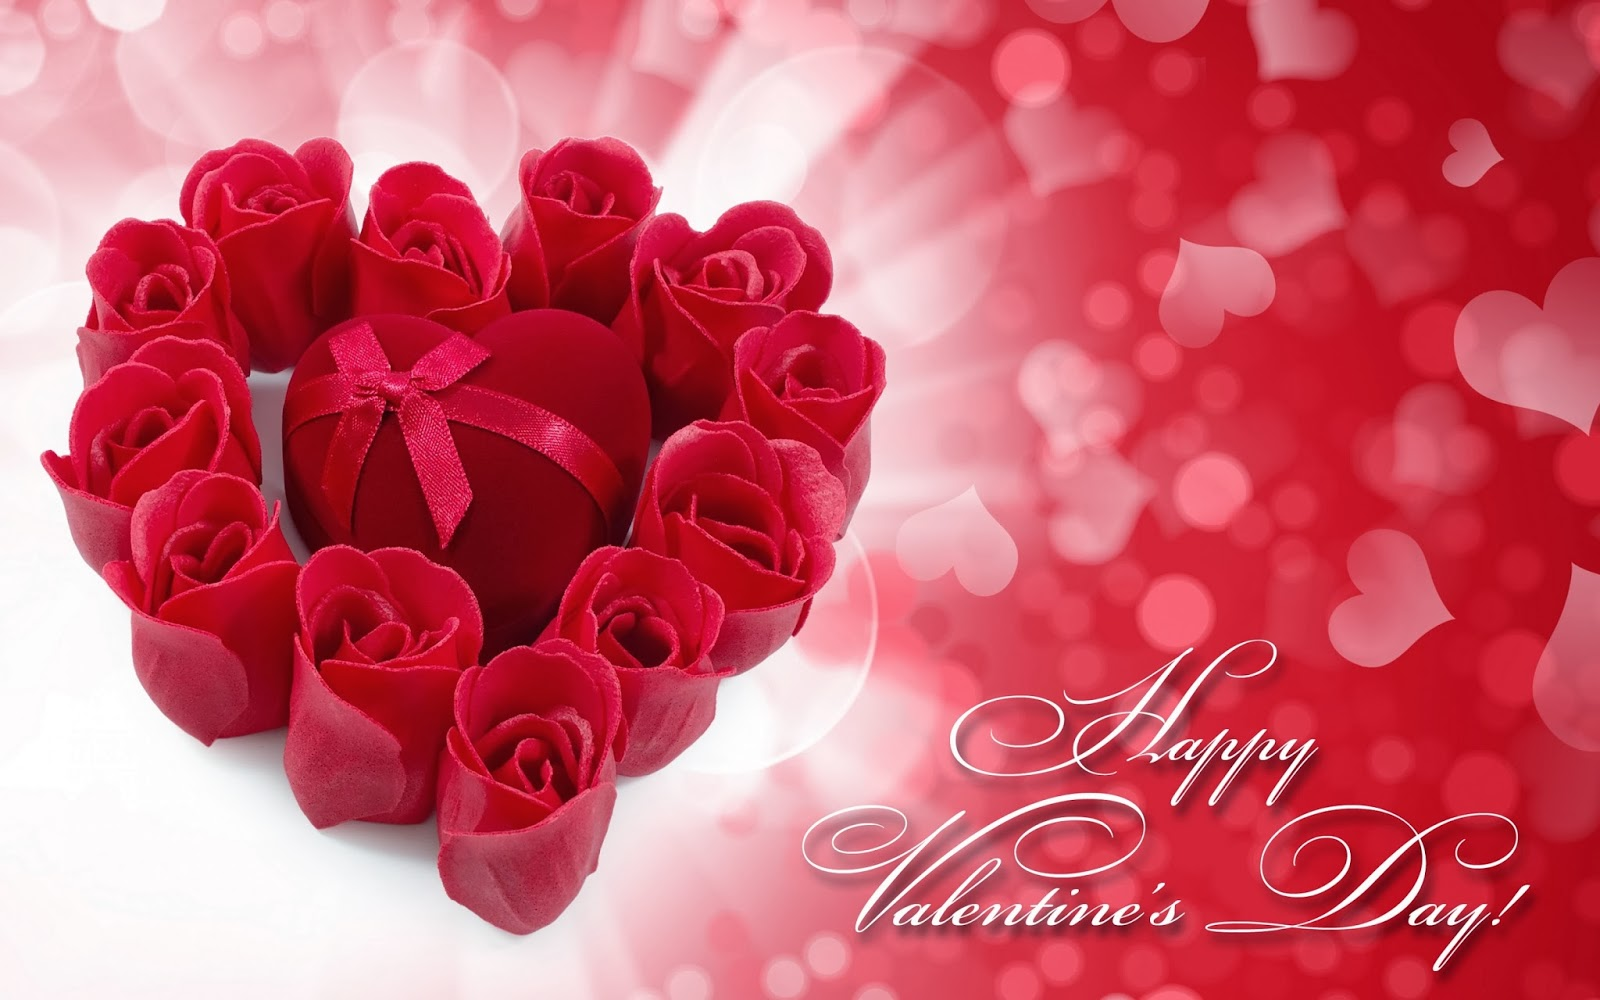 Valentines day 2016 love pictures and wallpapers